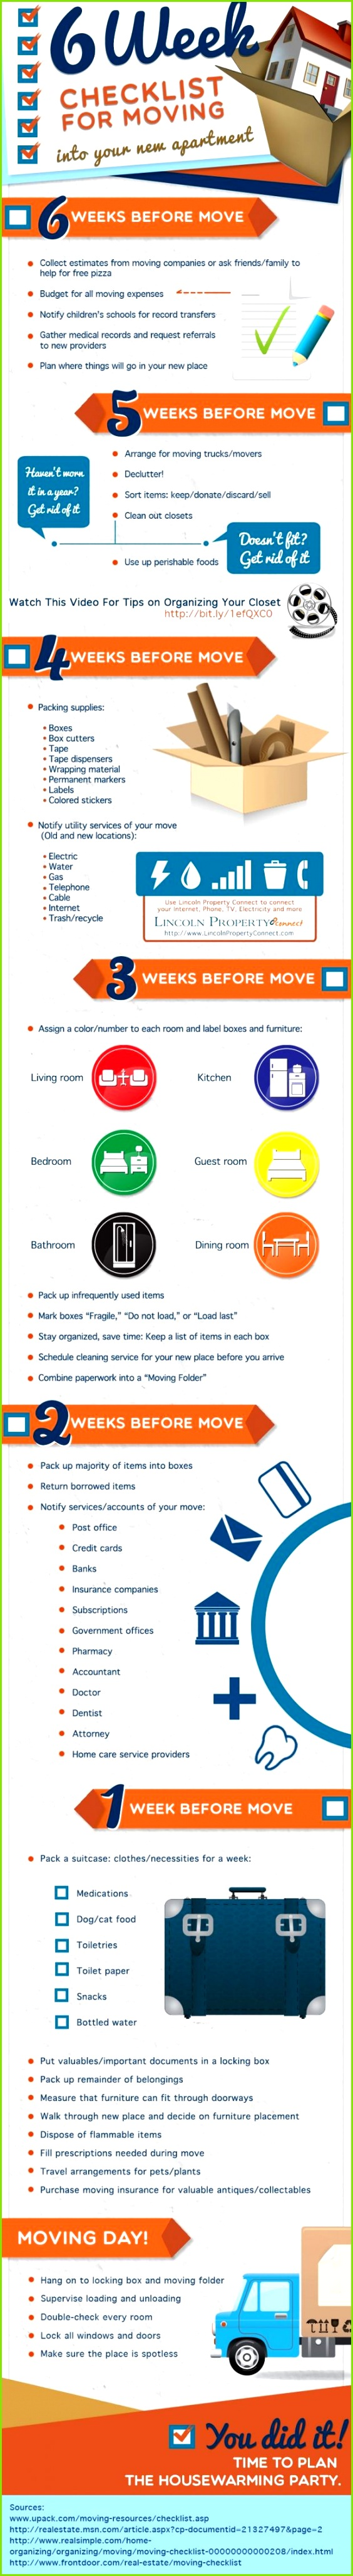 6 Week Checklist For Moving Into Your New Apartment infographic